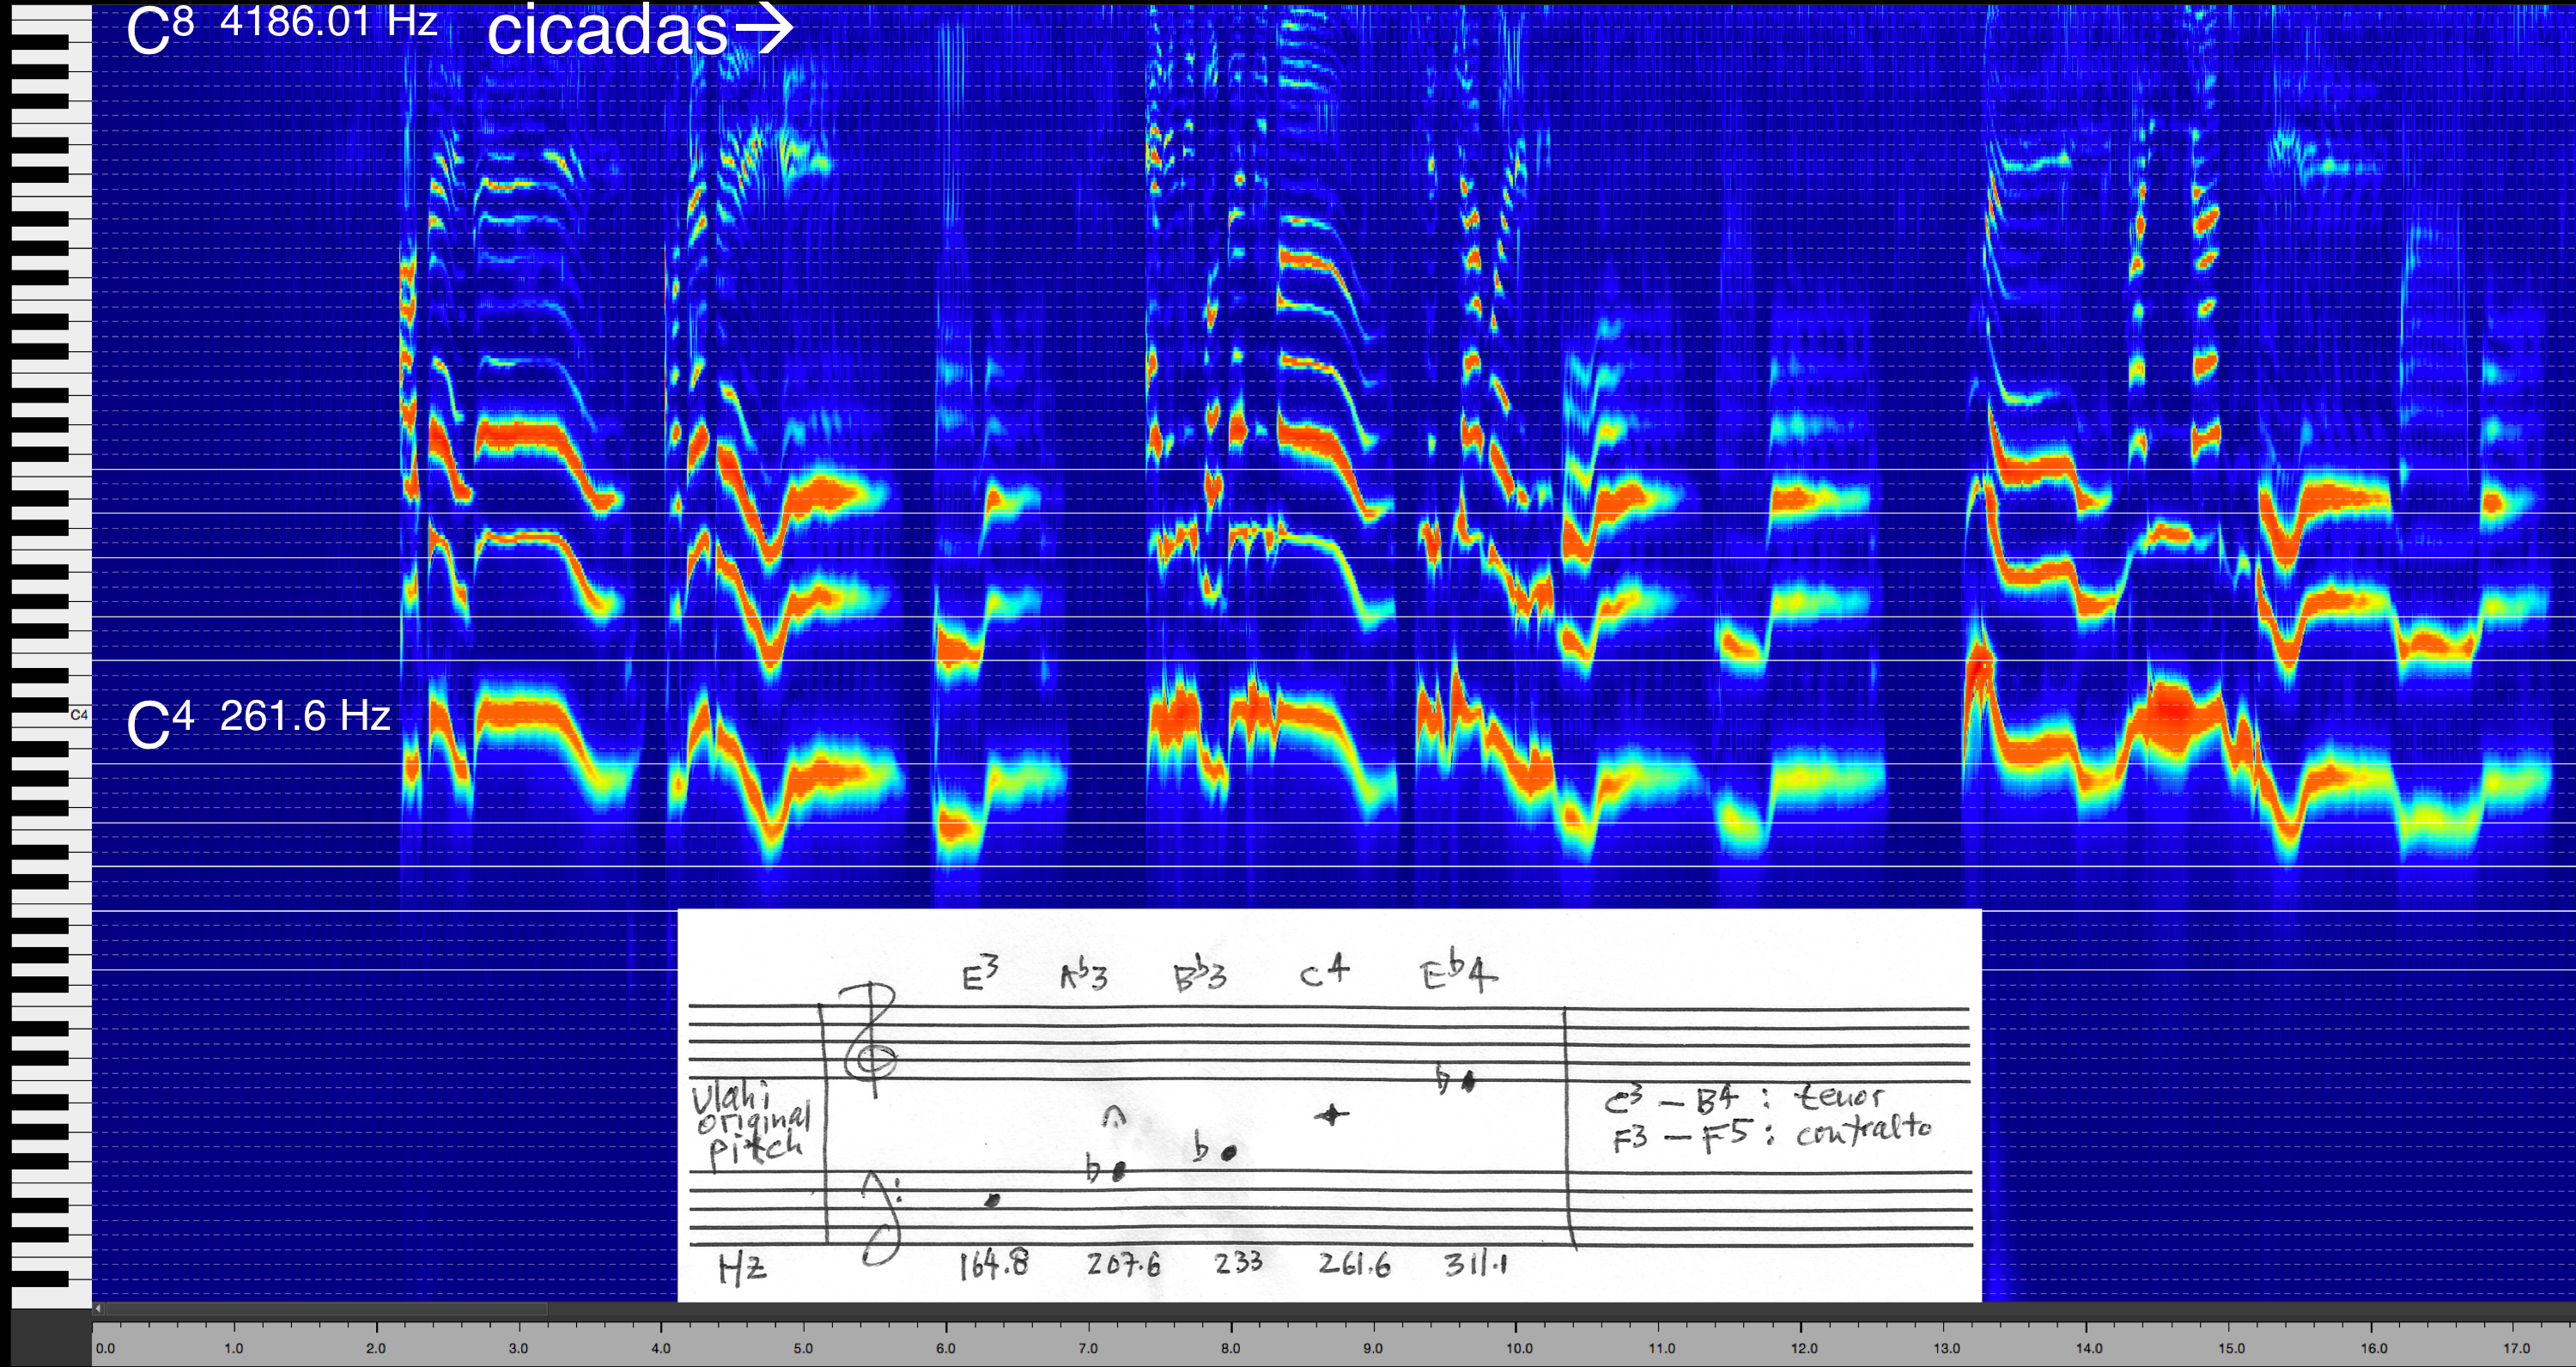 Figure 4. Spectrogram of Ulahi's song, alongside piano roll and music notation of her original pitches